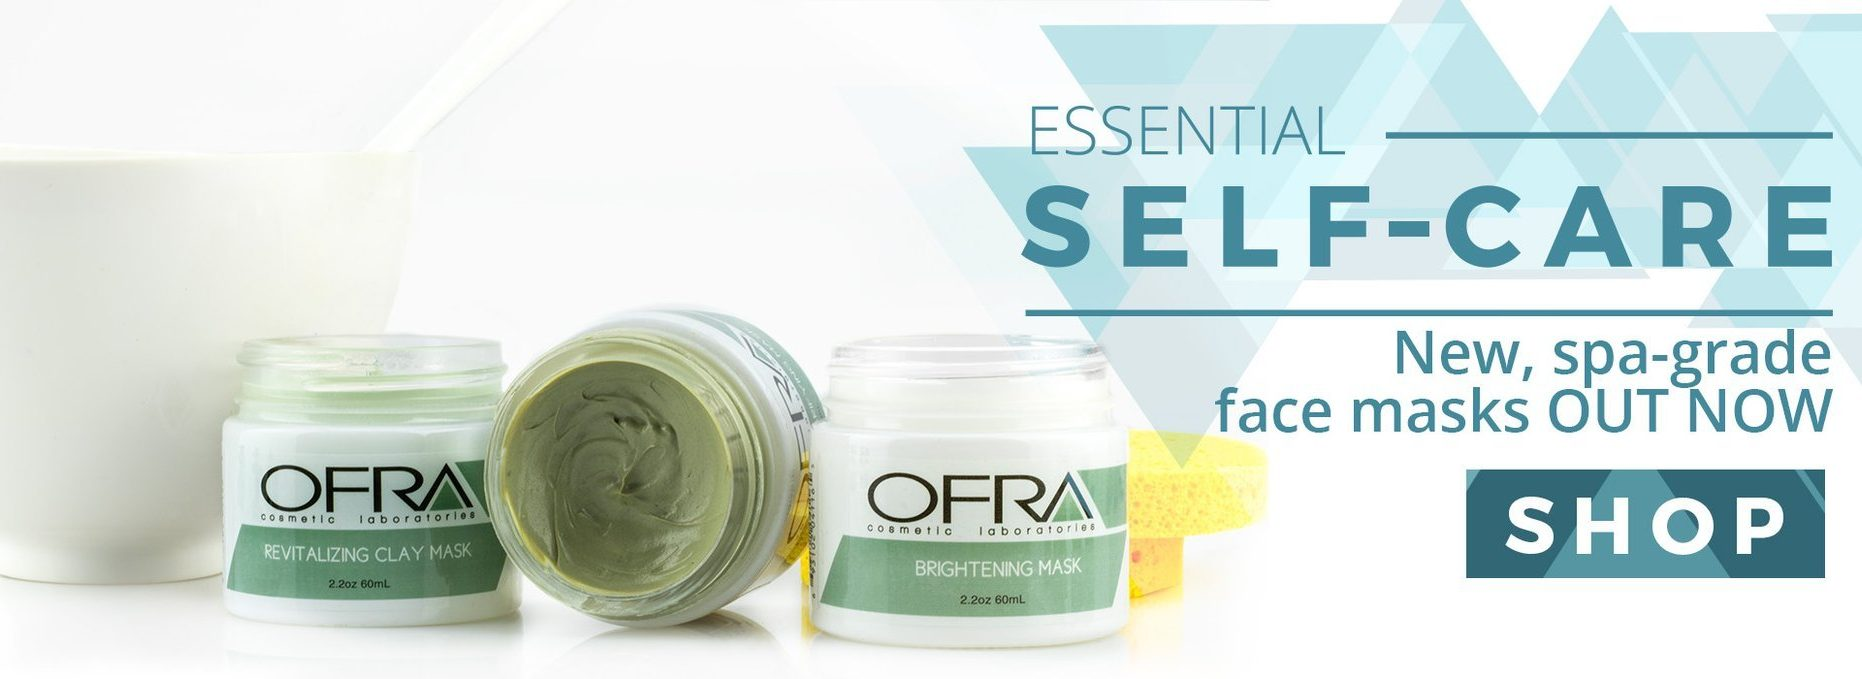 OFRA Cosmetics South Africa – Professional Makeup & Skincare